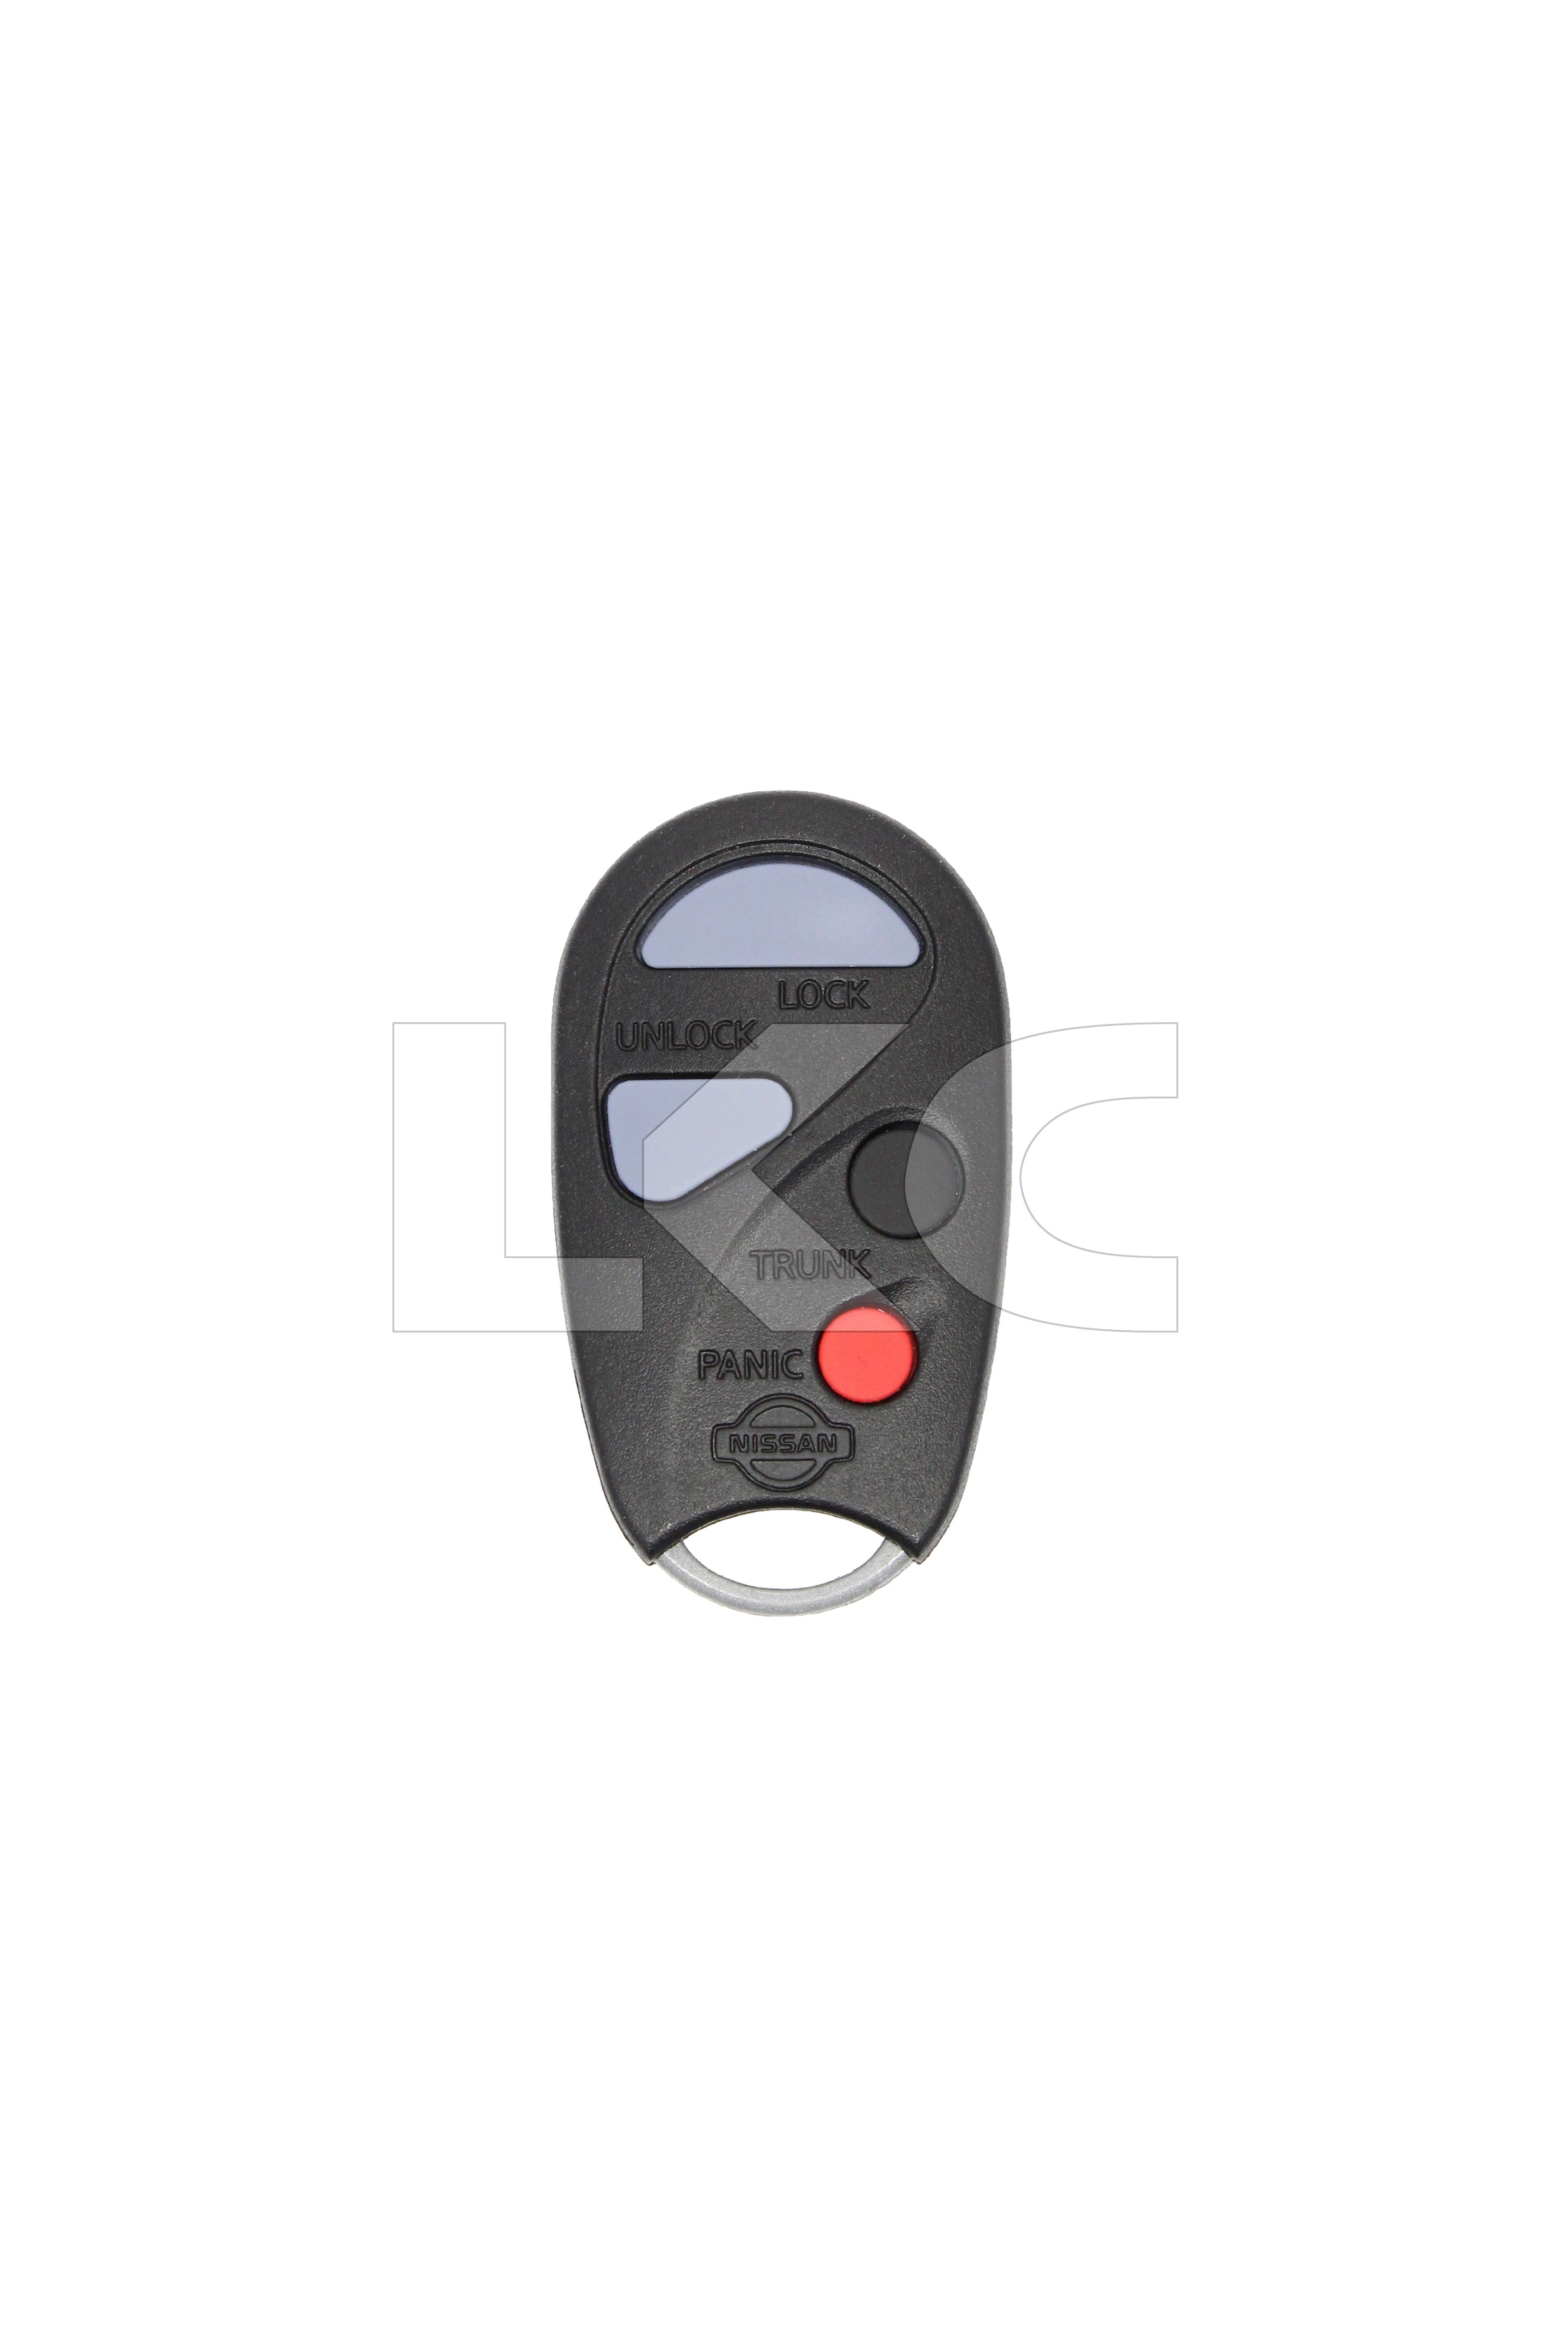 New Uncut key with 3 BUTTON remote MOZB41TG With OEM chip For 06-10 Scion TC